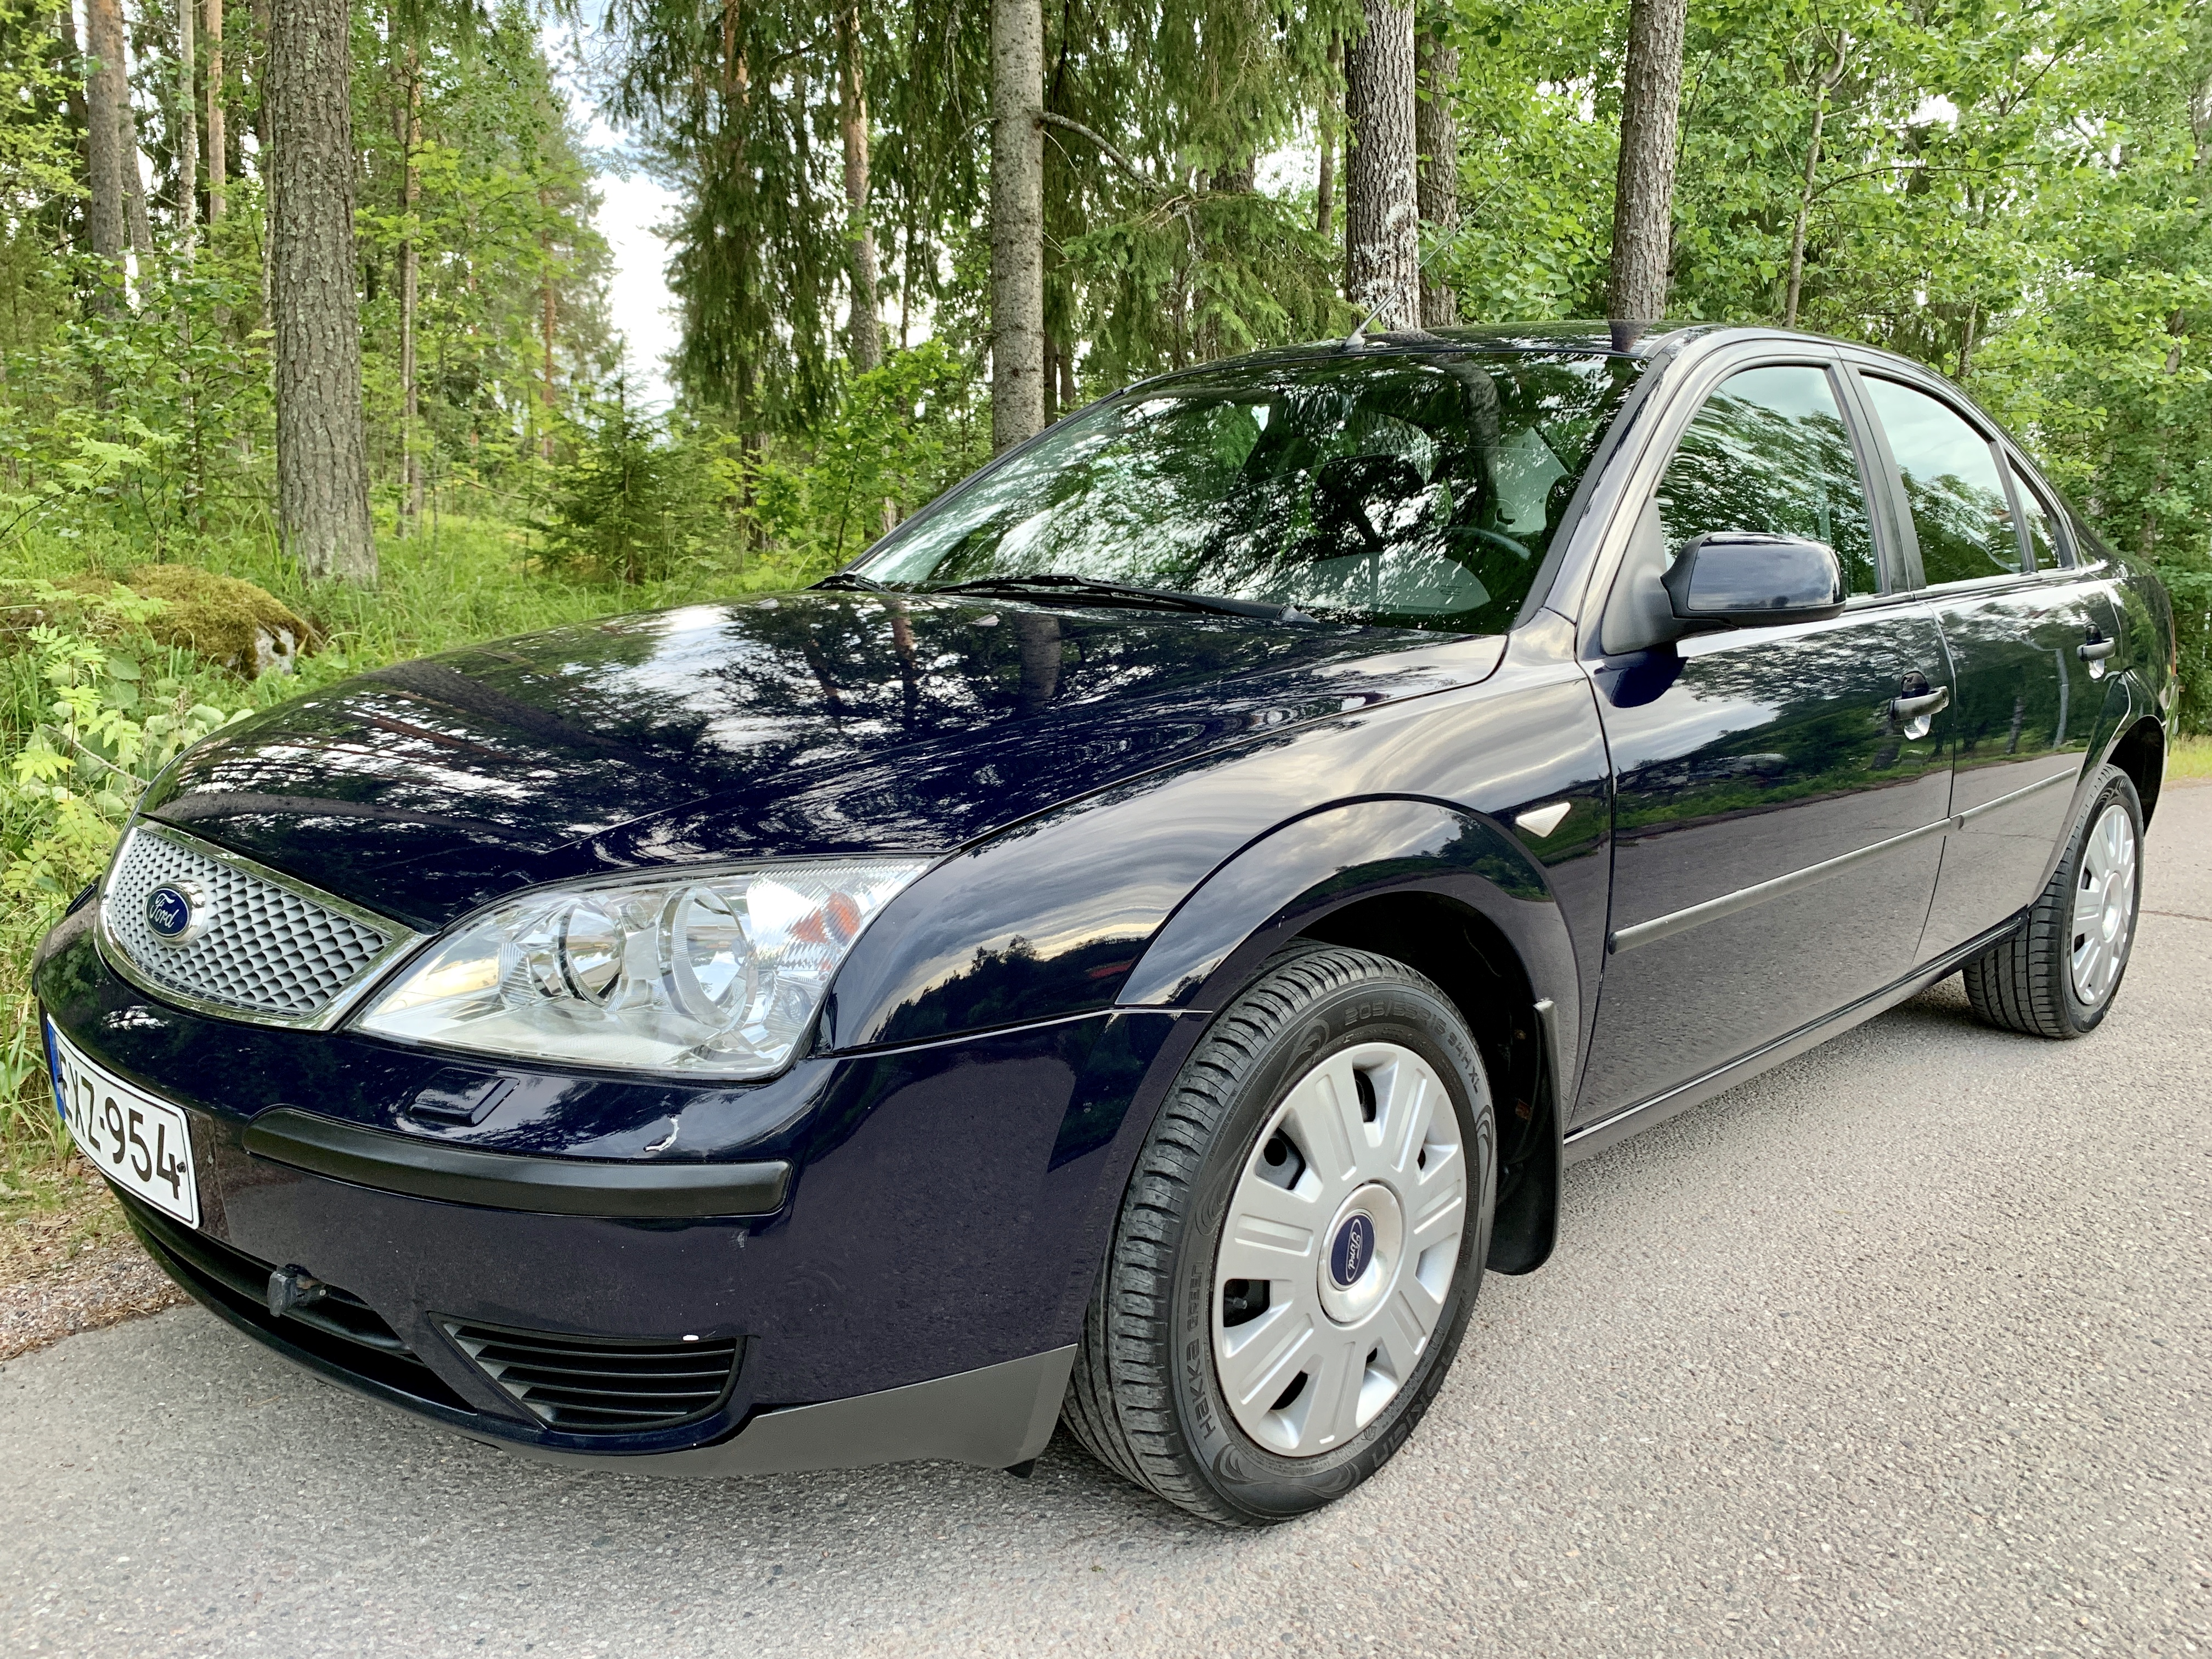 Ford Mondeo 1.8i Ambiente EXZ-954